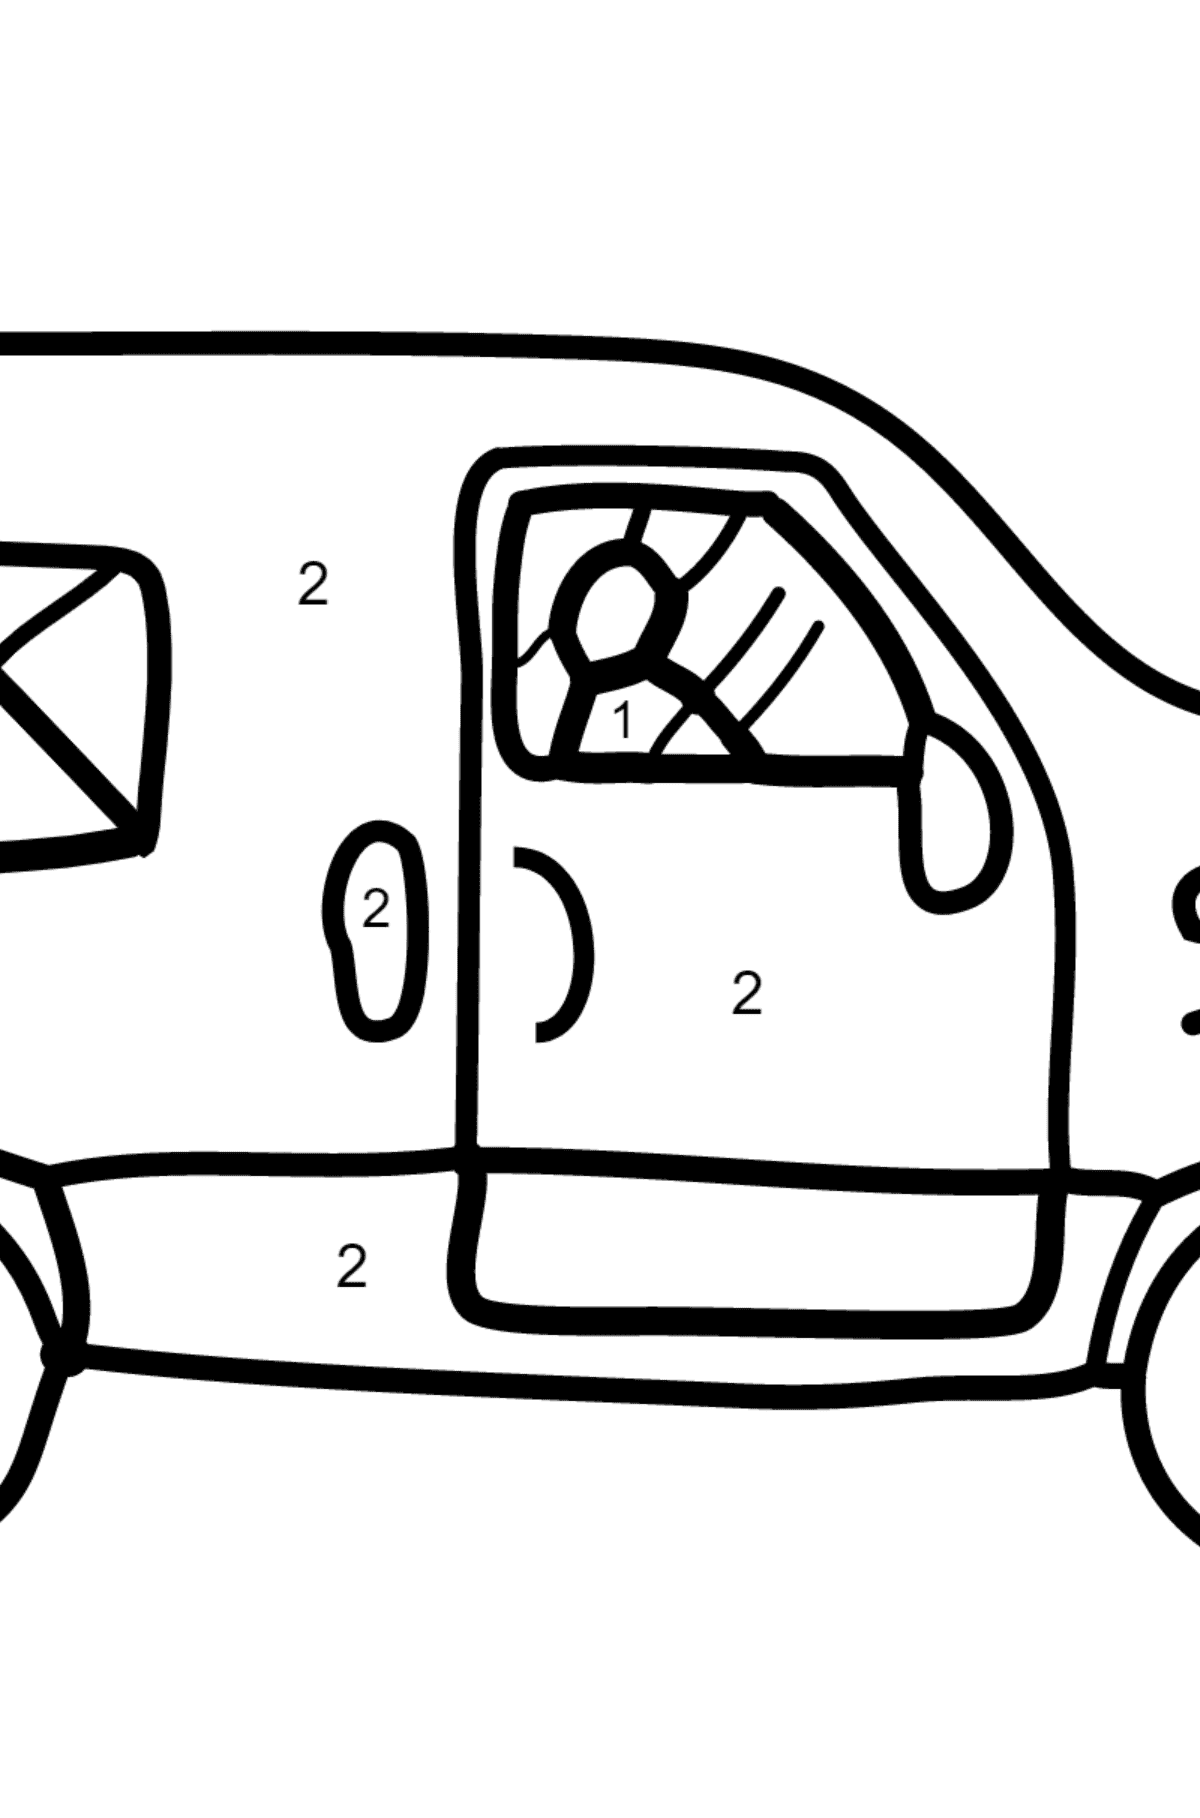 Coloring Page - A Car is Carrying Mail - Coloring by Numbers for Children